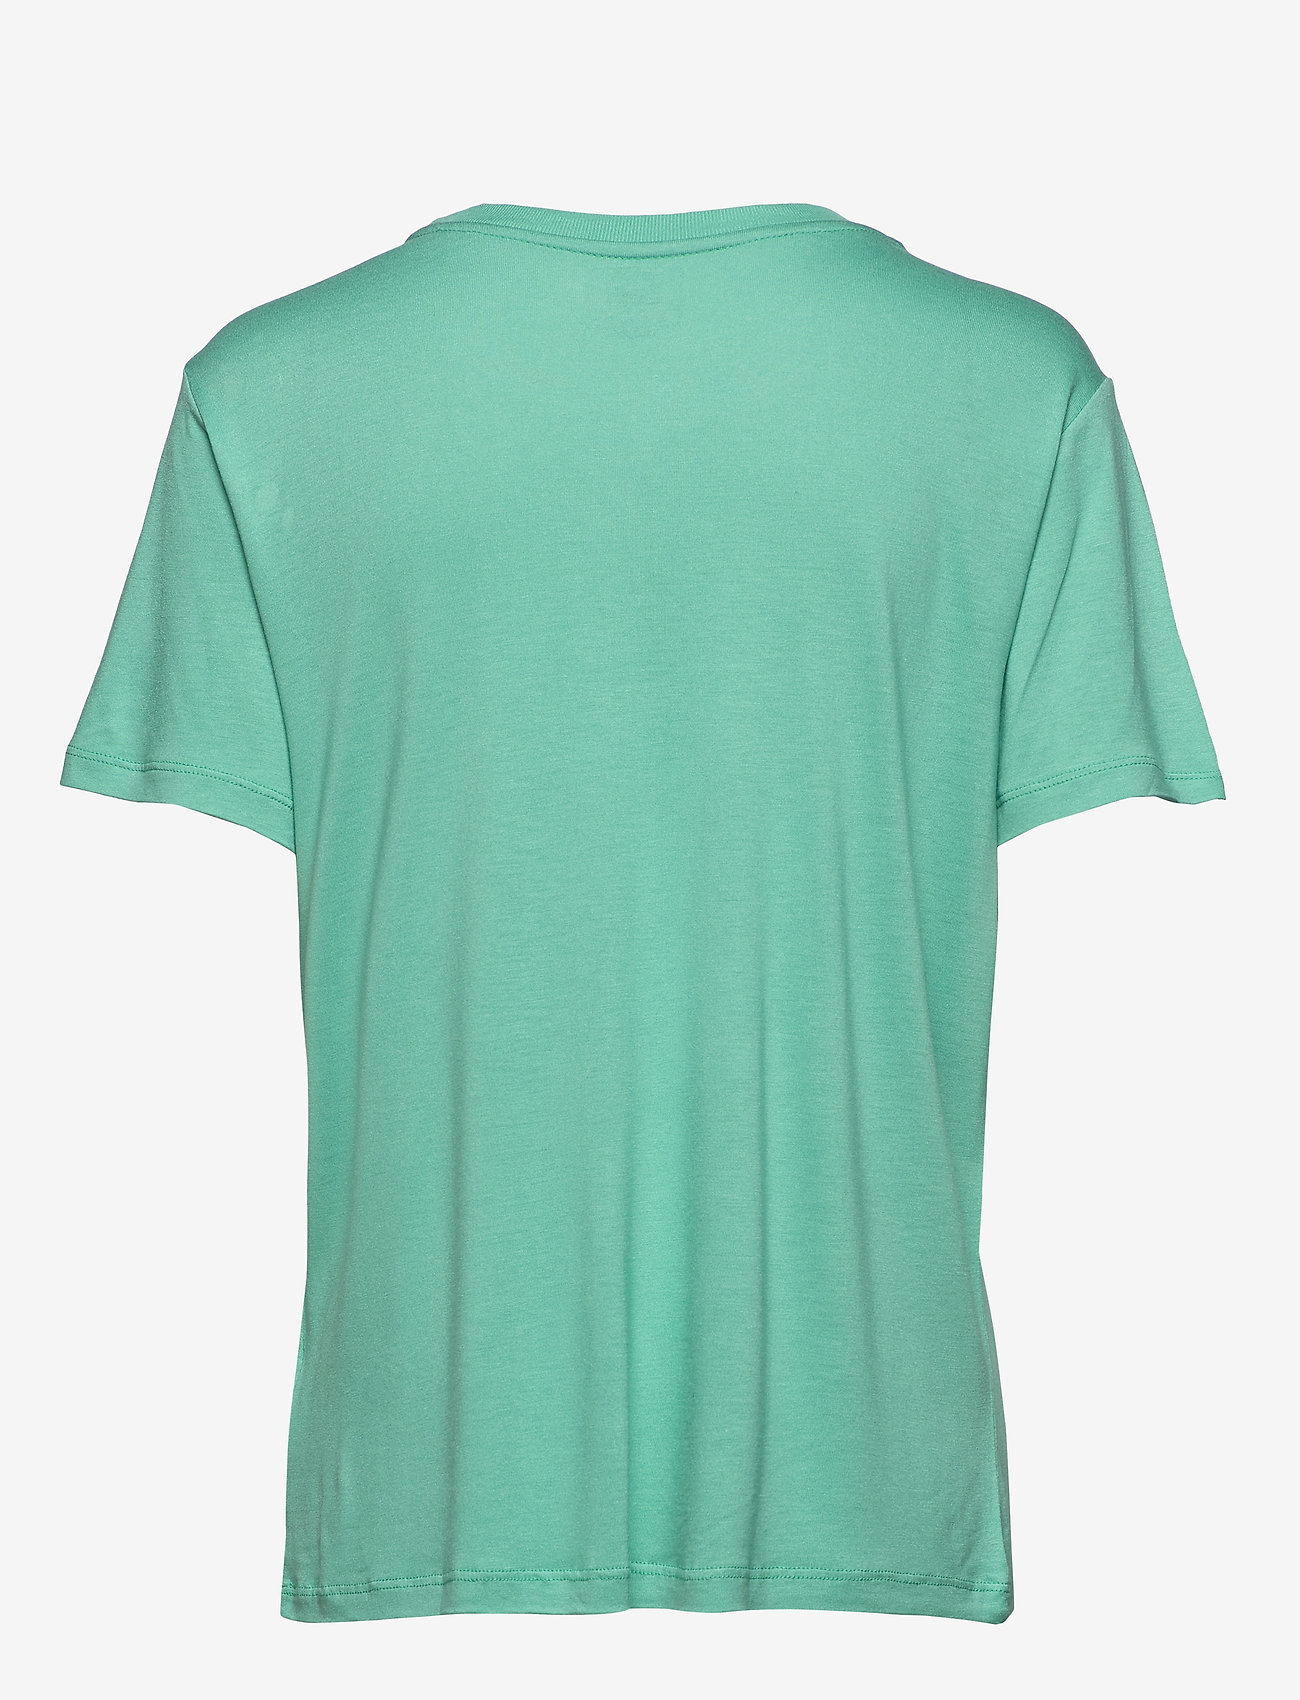 Lee Jeans - RELAXED FIT TEE - t-shirts - agate green - 1